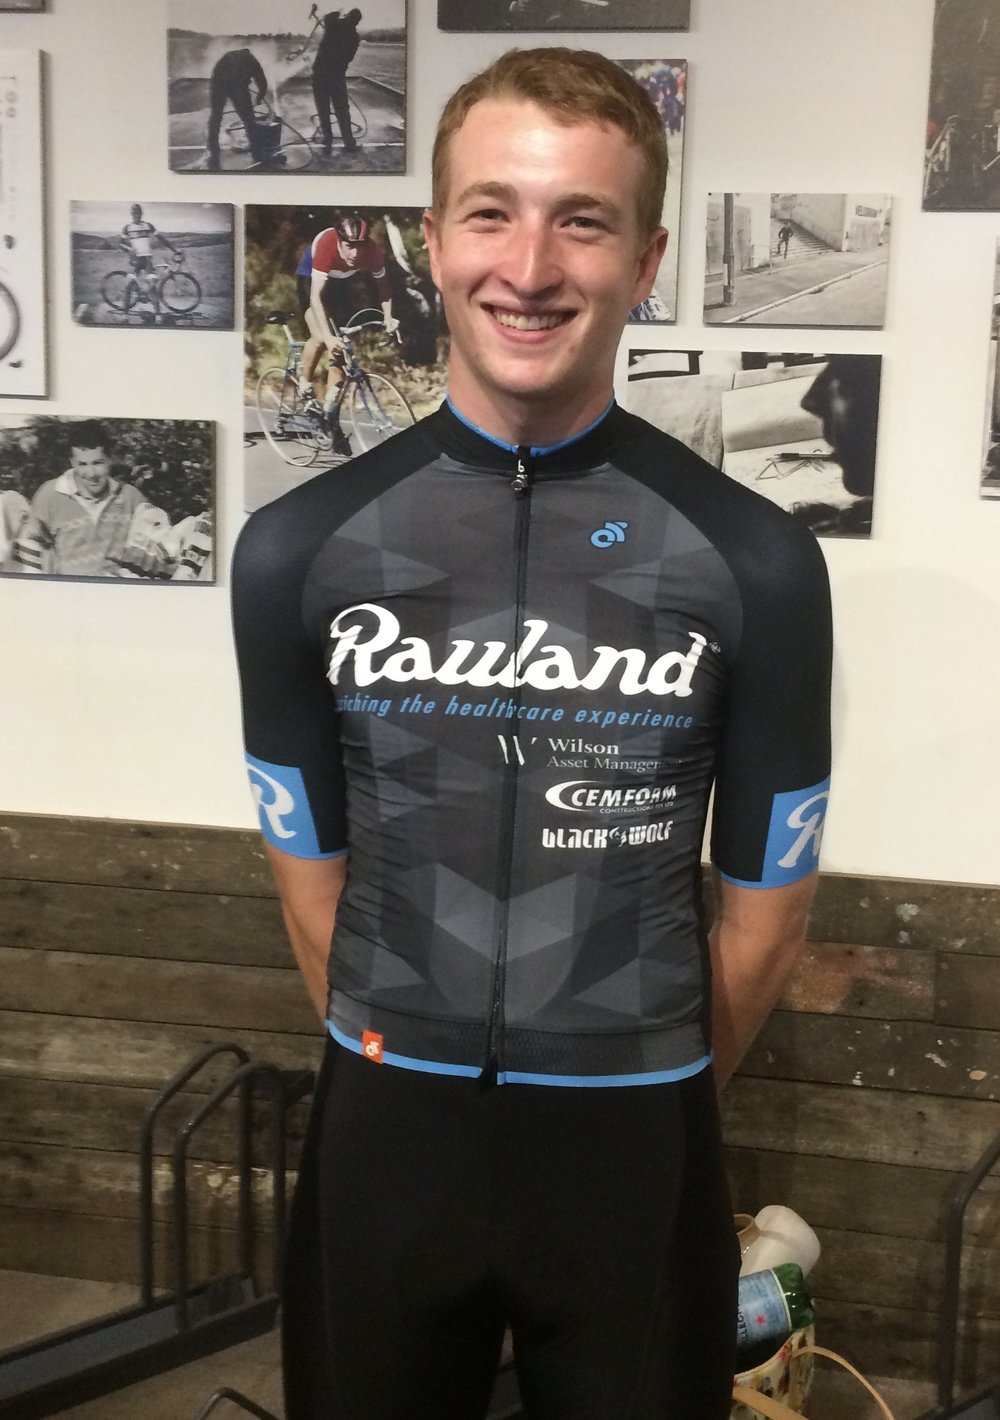 Conor Tarlington (BiciSport) has gained selection to the Rauland Development Team for the 2017 road season. Conor races the Tolland (Wagga) weekend over both days on 4 & 5 March